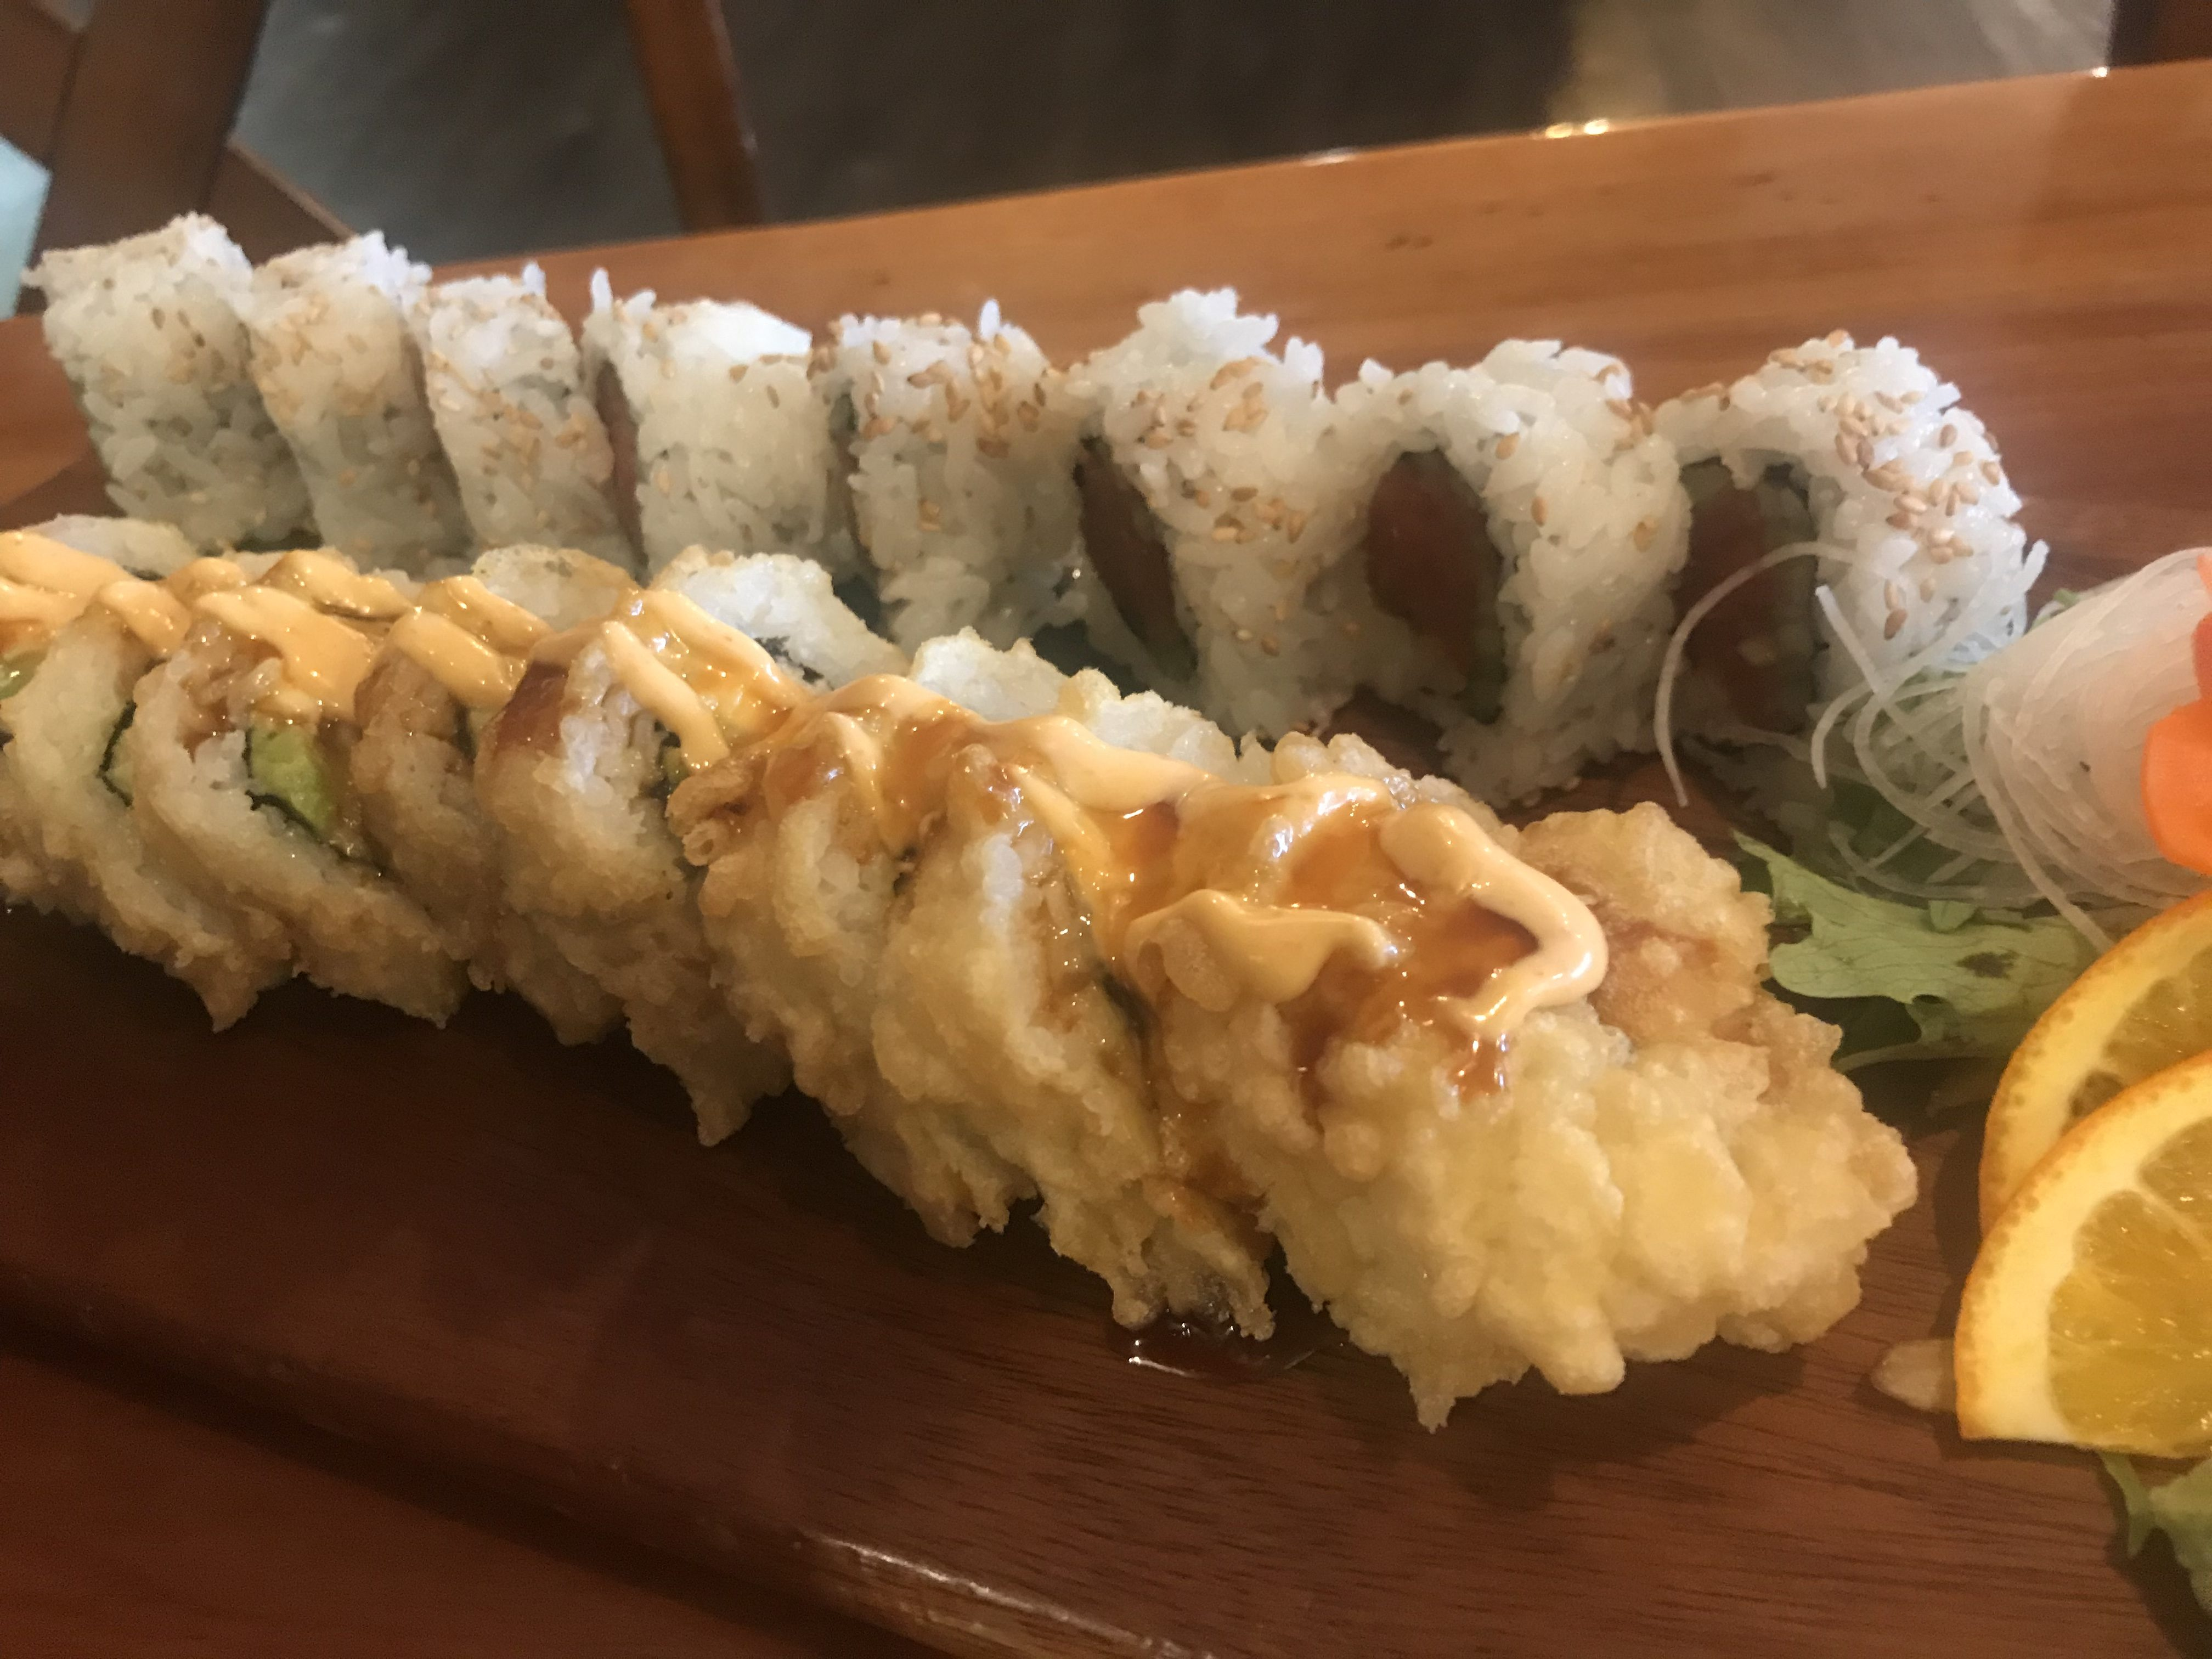 Sushi at Sushi Ya in Kennewick - February 20 2019